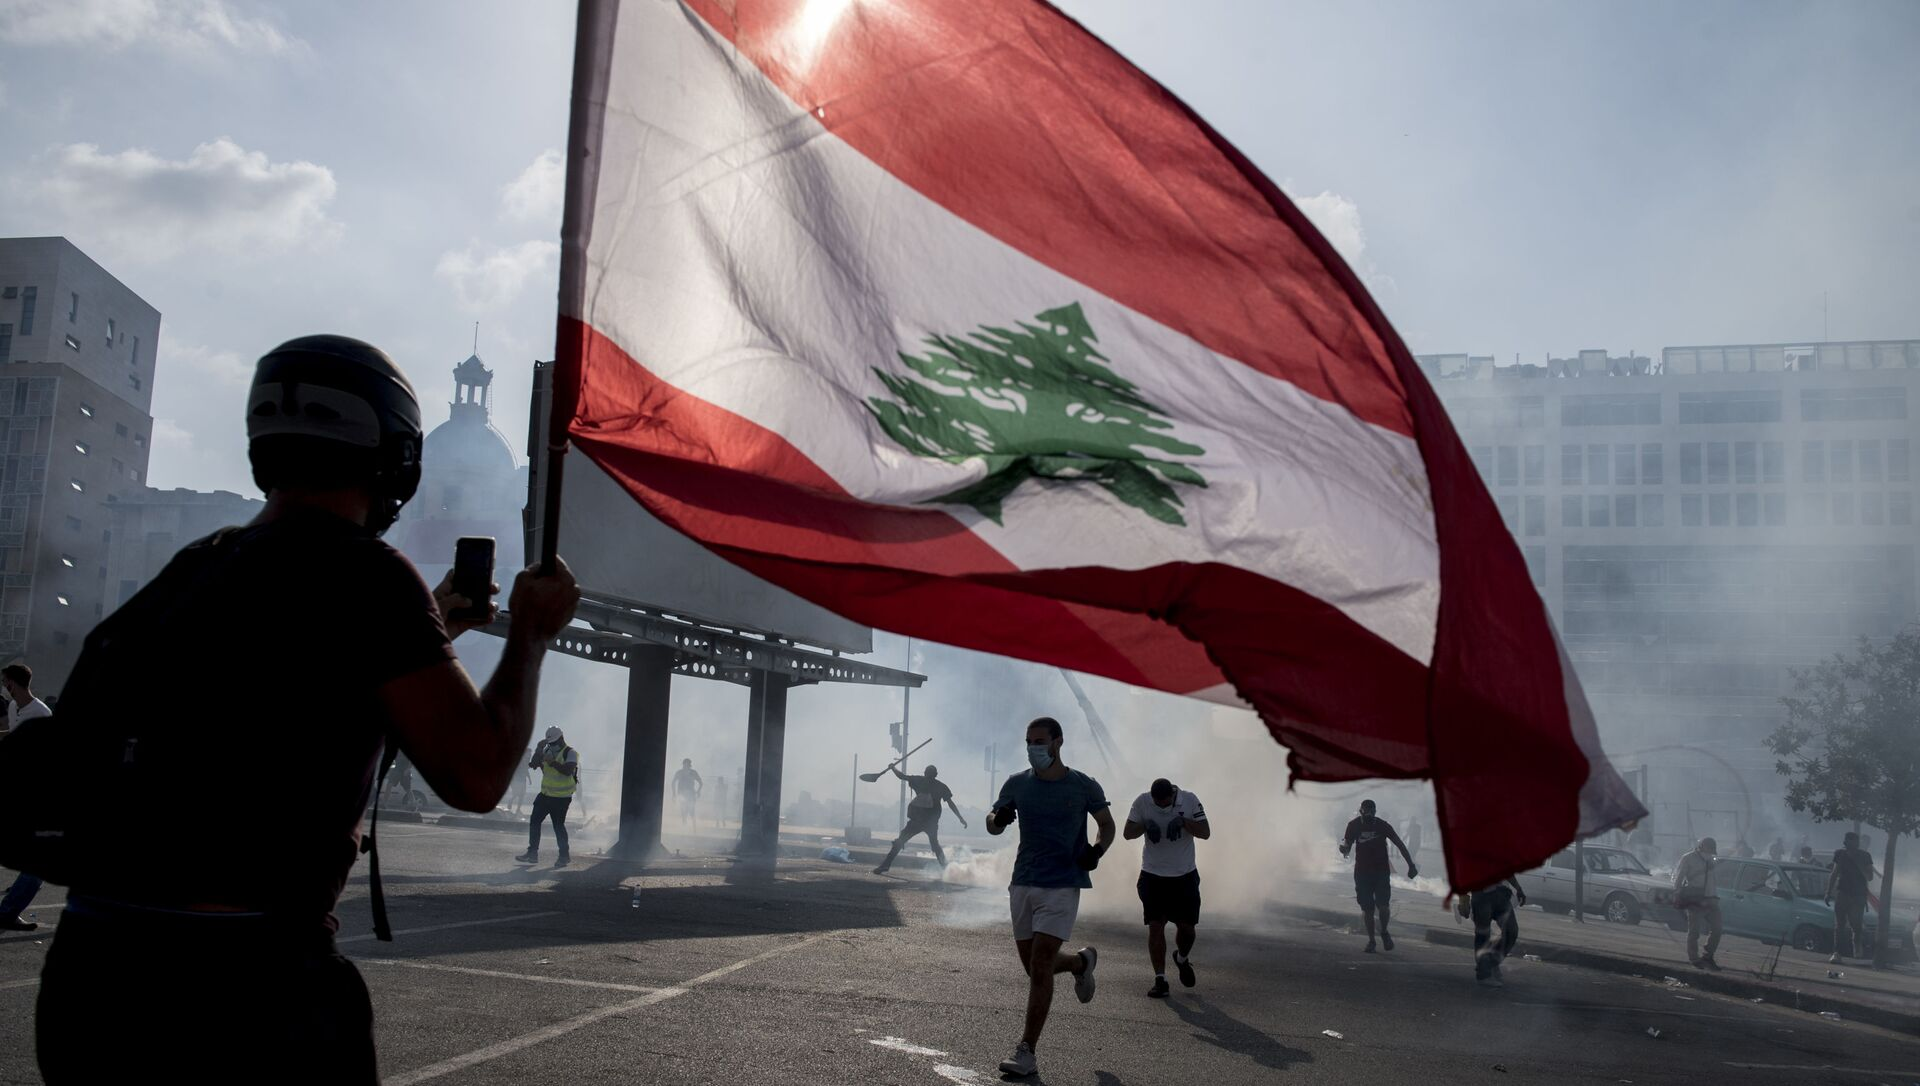 Clashes between anti-government protesters and security forces in Beirut, Lebanon. - Sputnik International, 1920, 23.07.2021